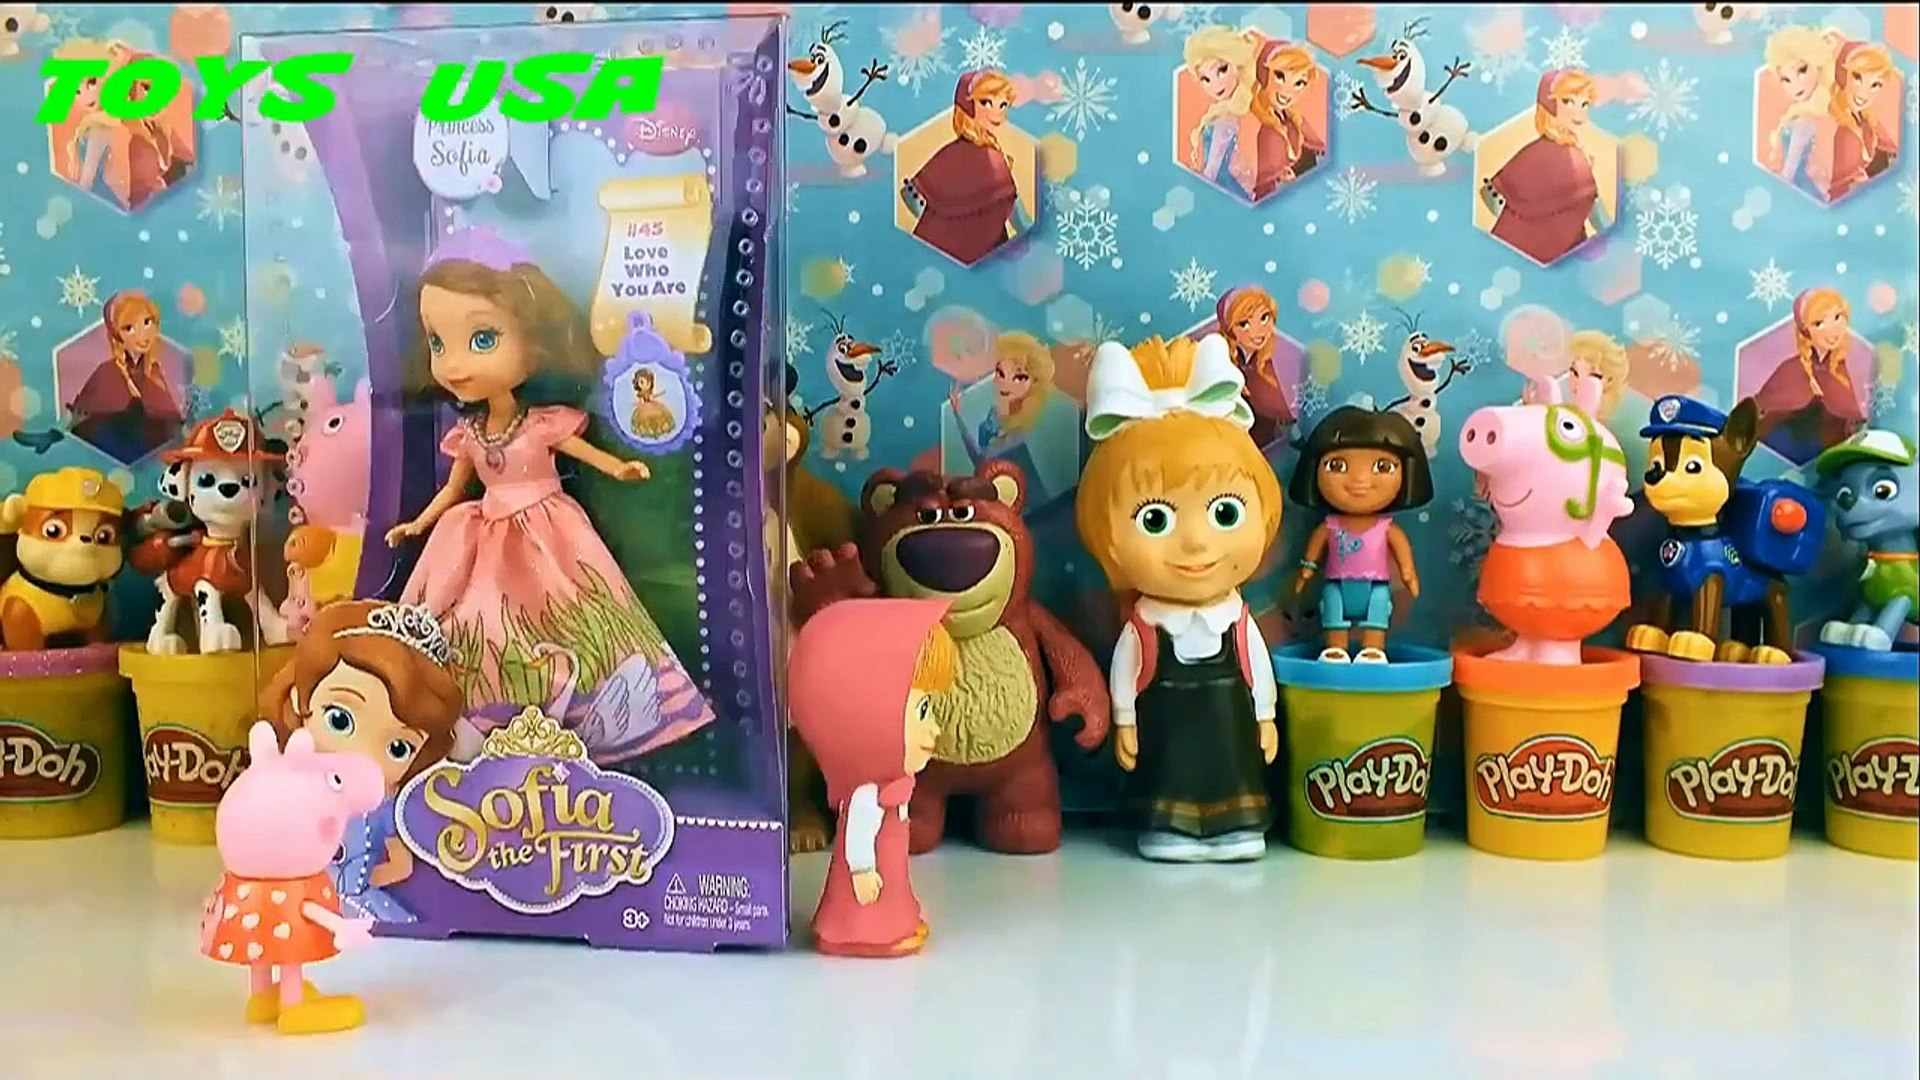 Sofia the First Princess Sofia Disney Junior София Прекрасная Принцесса София meet new friends peppa